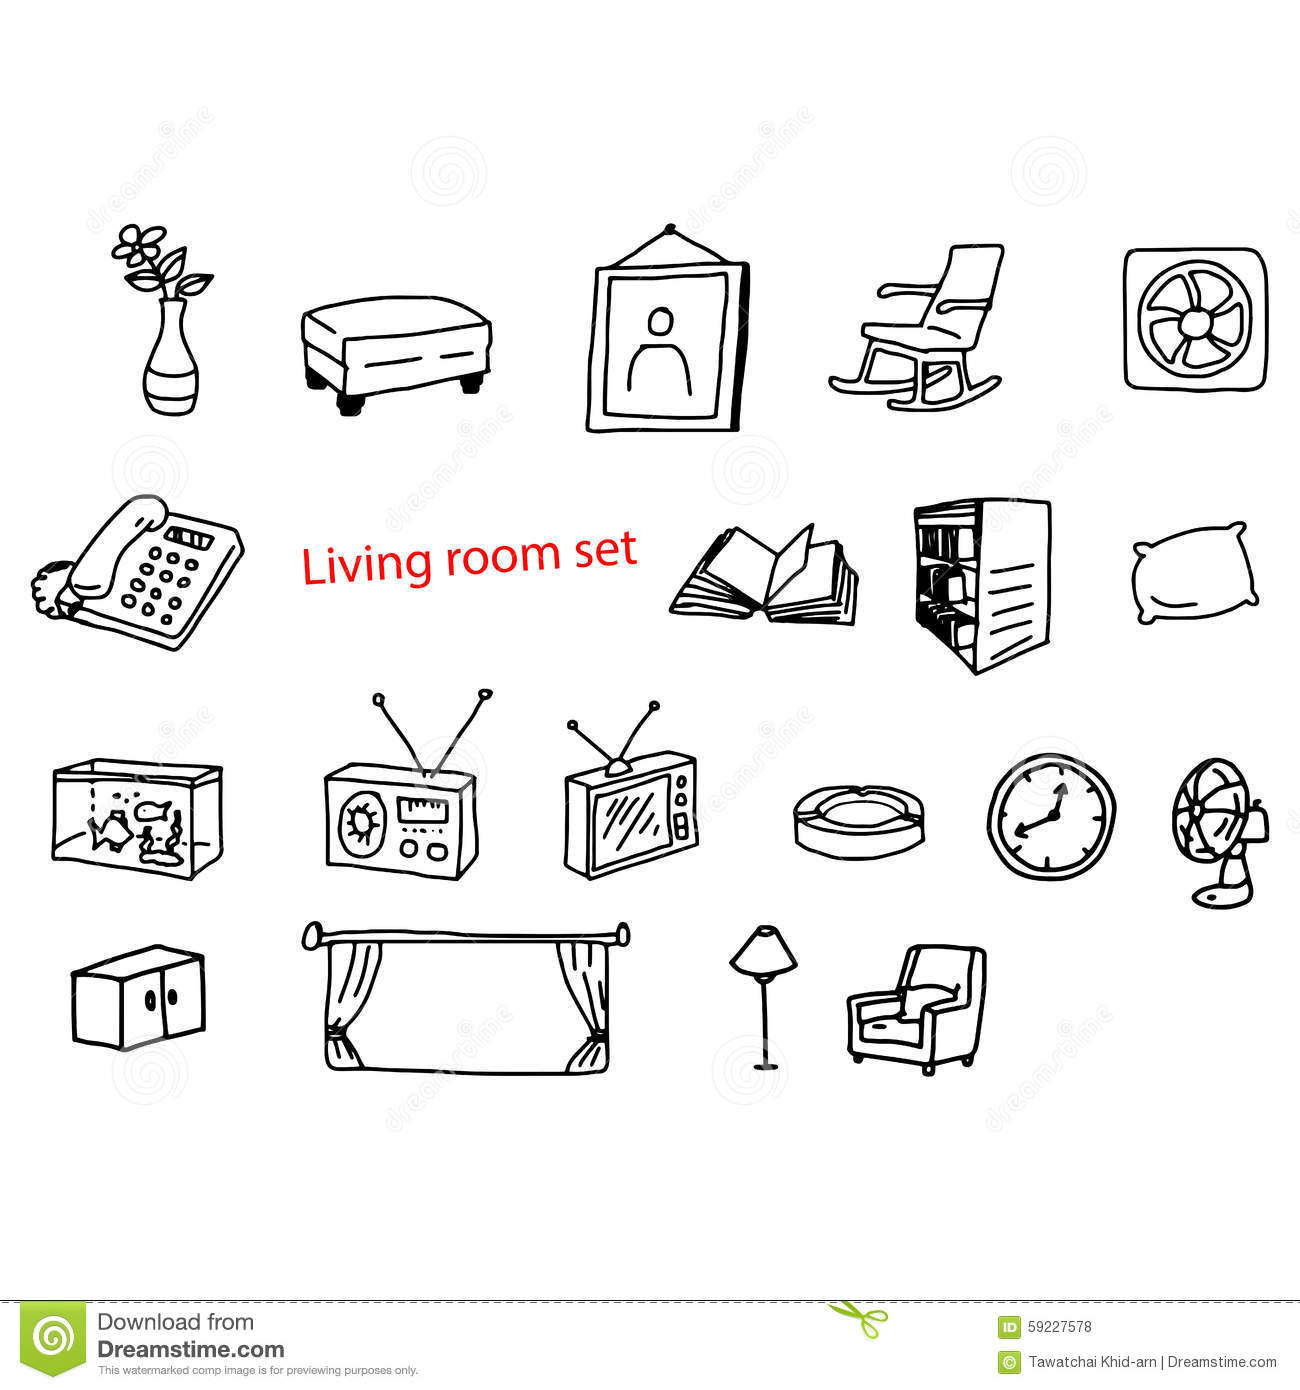 Illustration Vector Doodles Hand Drawn Objects In Living